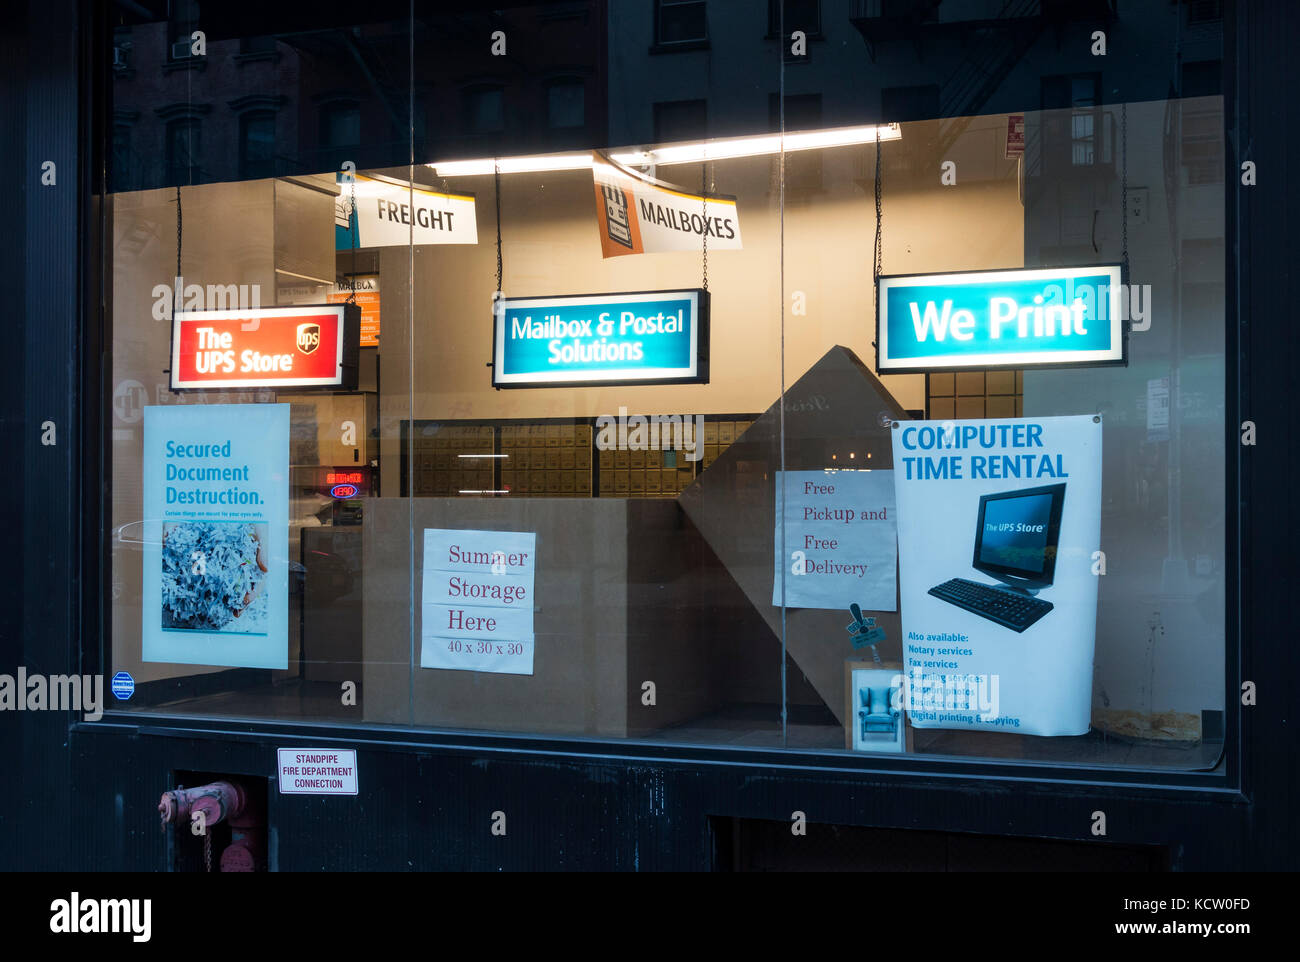 A UPS Store window display in New York City - Stock Image